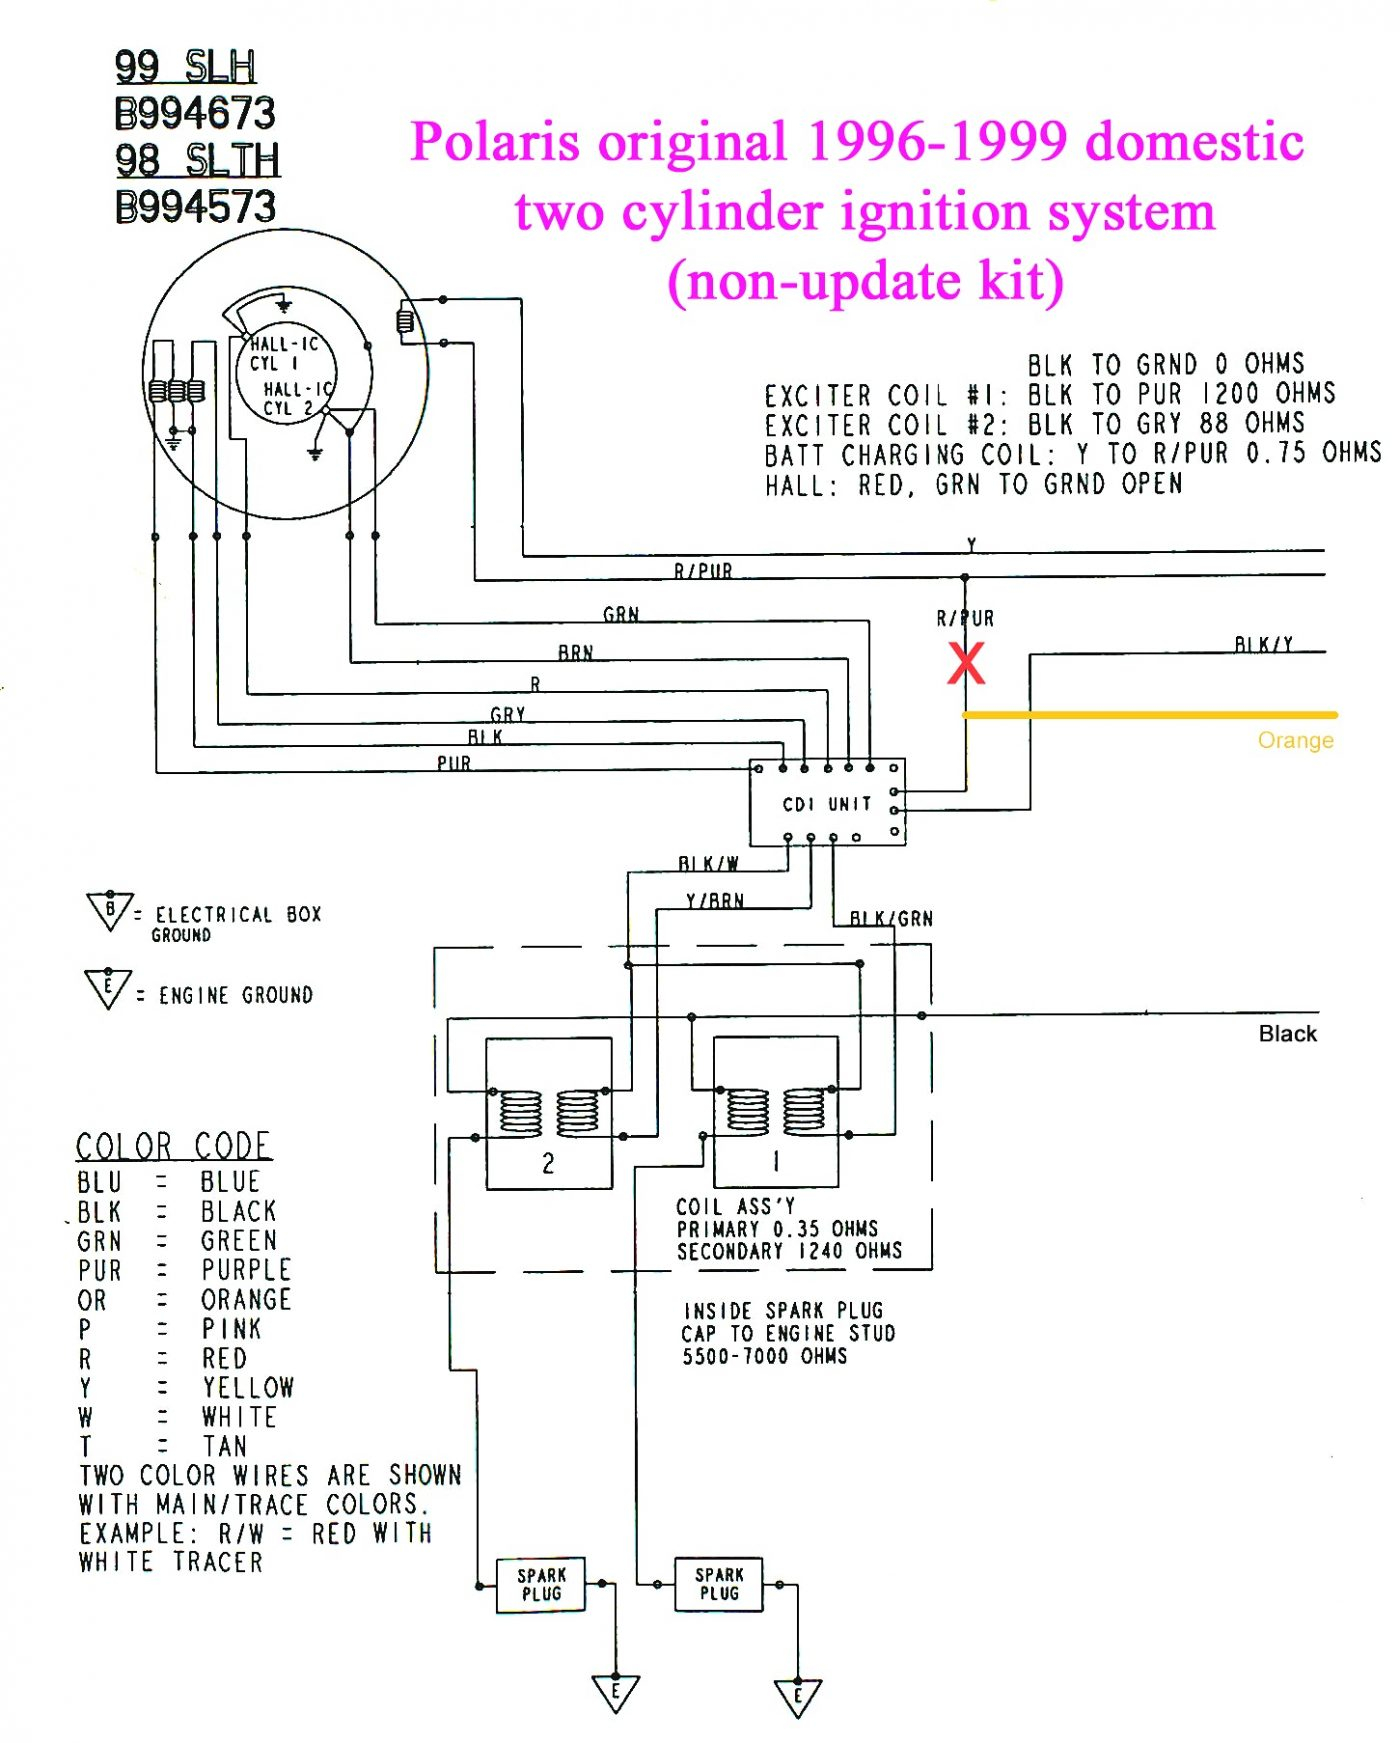 da lite motorized screen wiring diagram Download-Da Lite Motorized Screen Wiring Diagram Elegant Da Lite Motorized Screen Wiring Vw Beetle 2 0 Engine 2001 Diagram 16-o